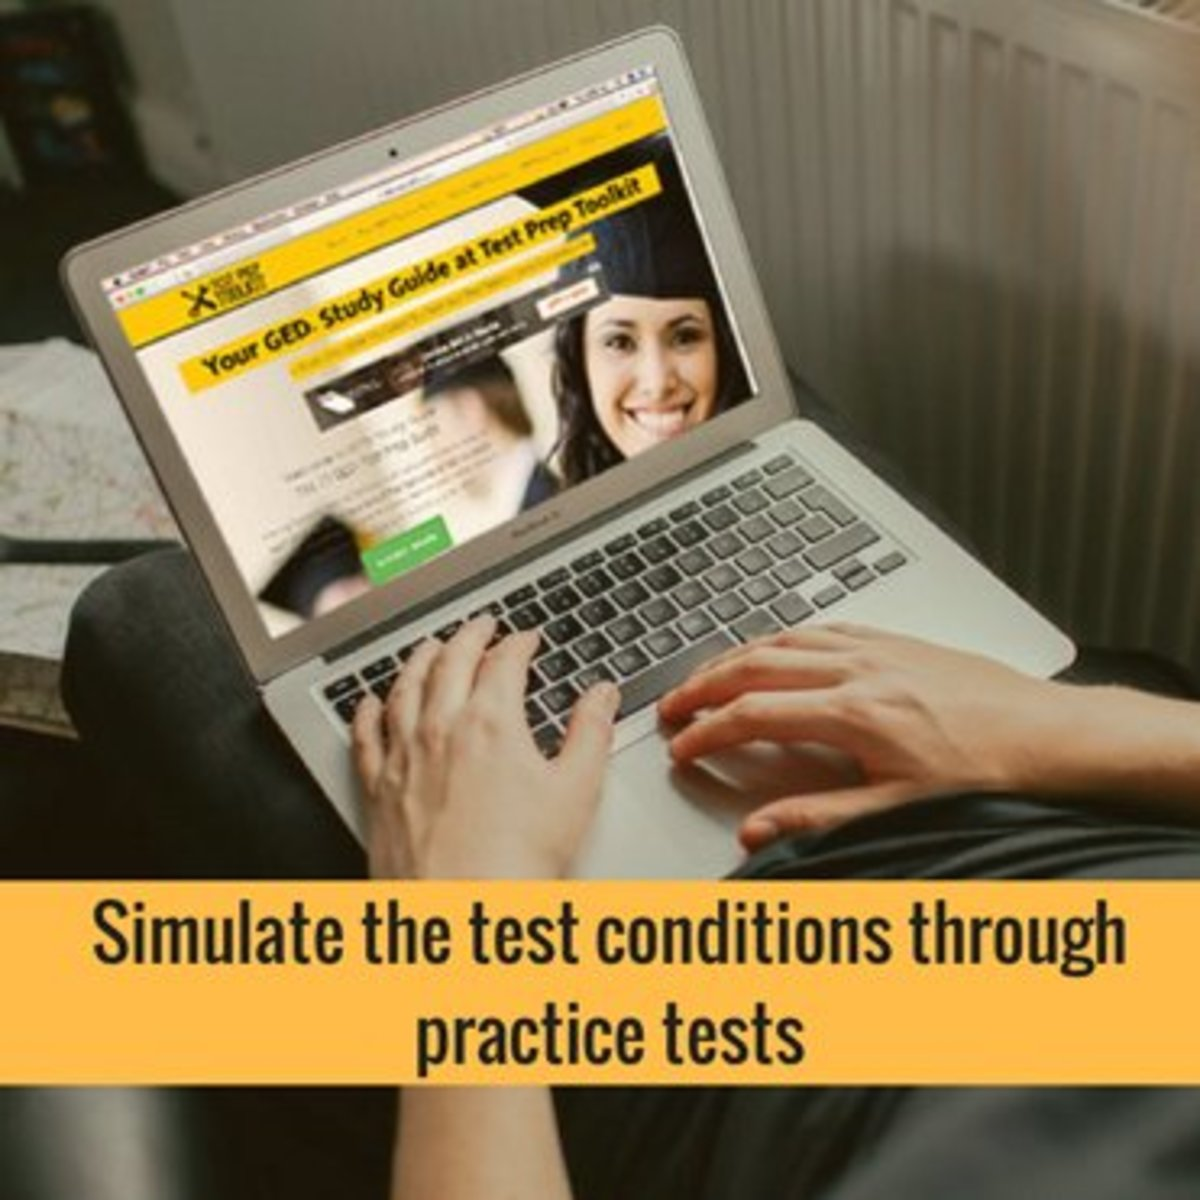 6 Foolproof Tips About How To Ace The ACT English Test